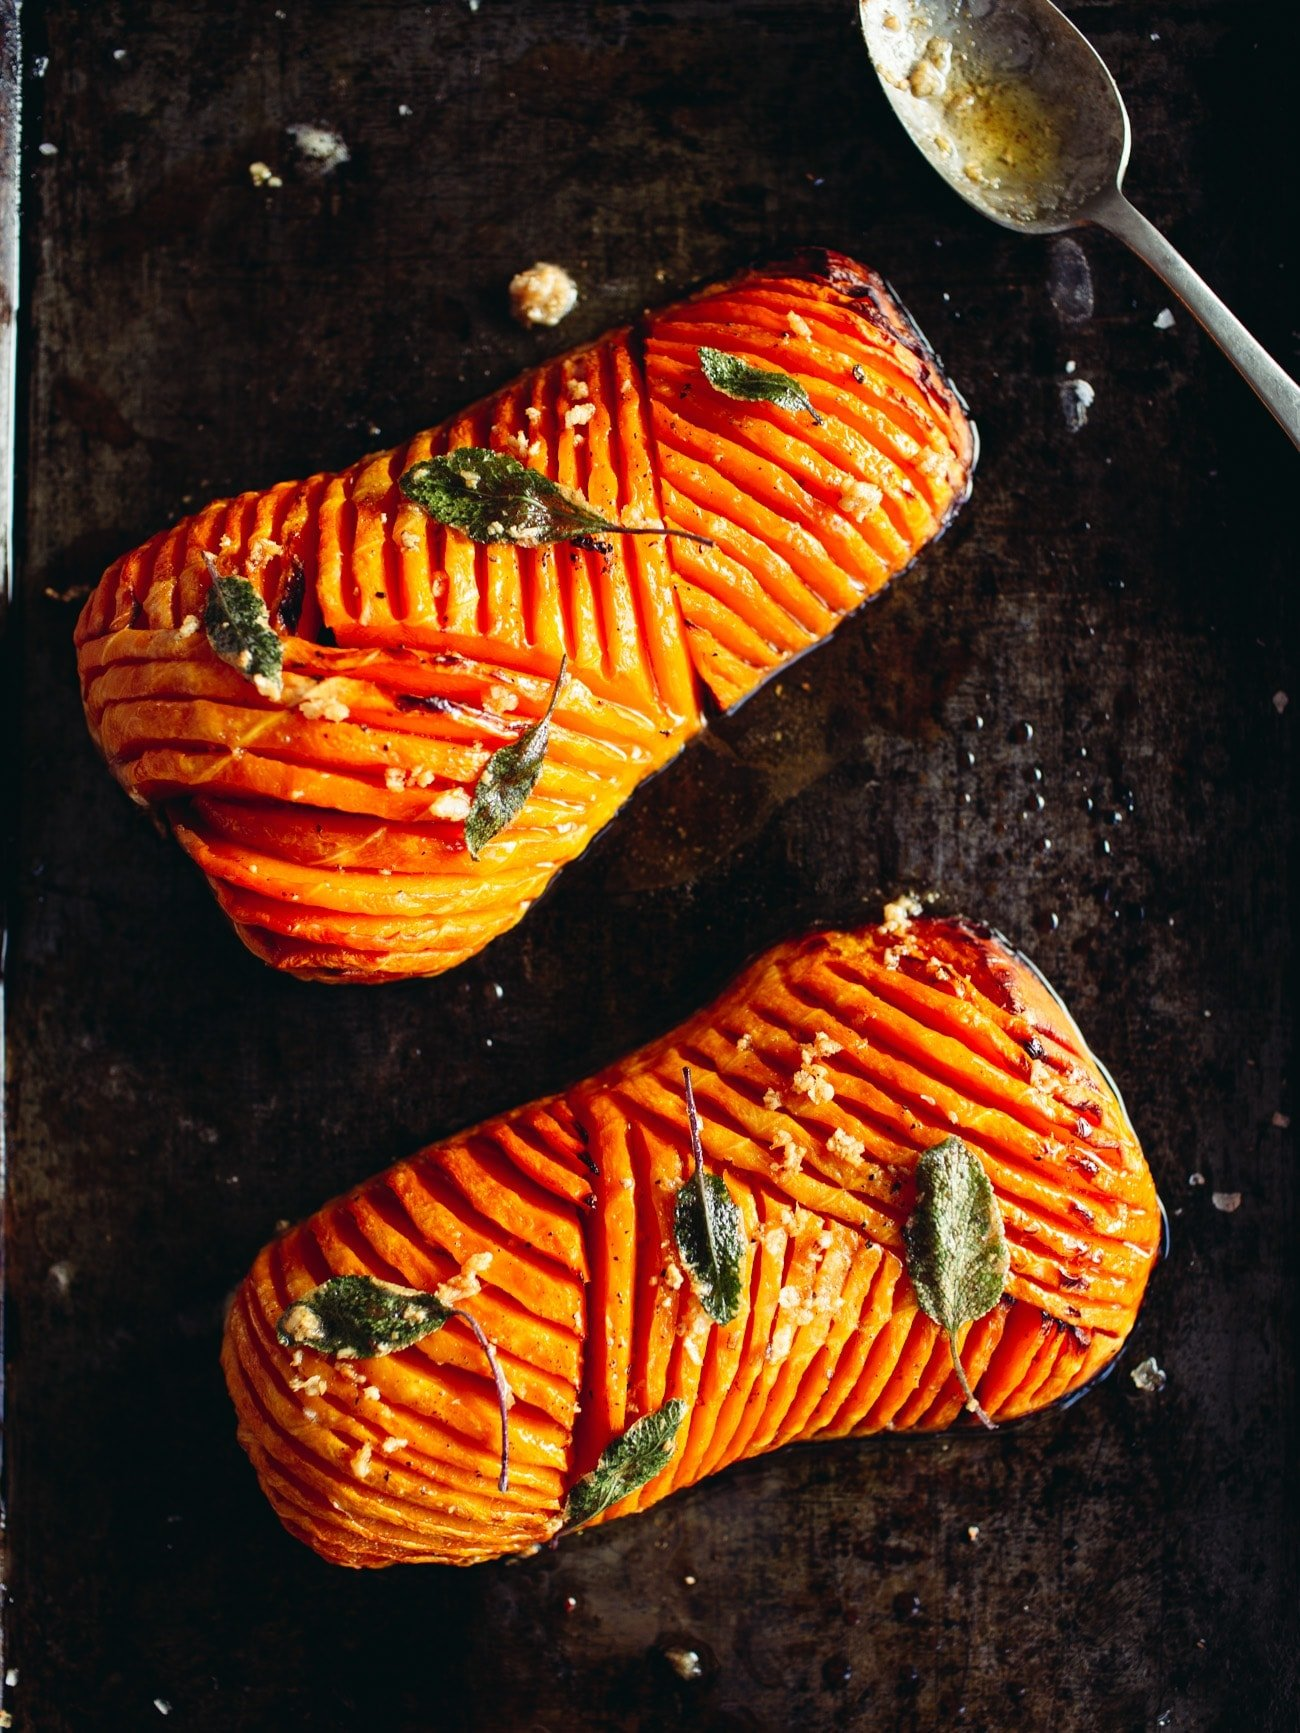 Food blogger Izy Hossack makes Hassleback Squash with Garlic-Sage Butter